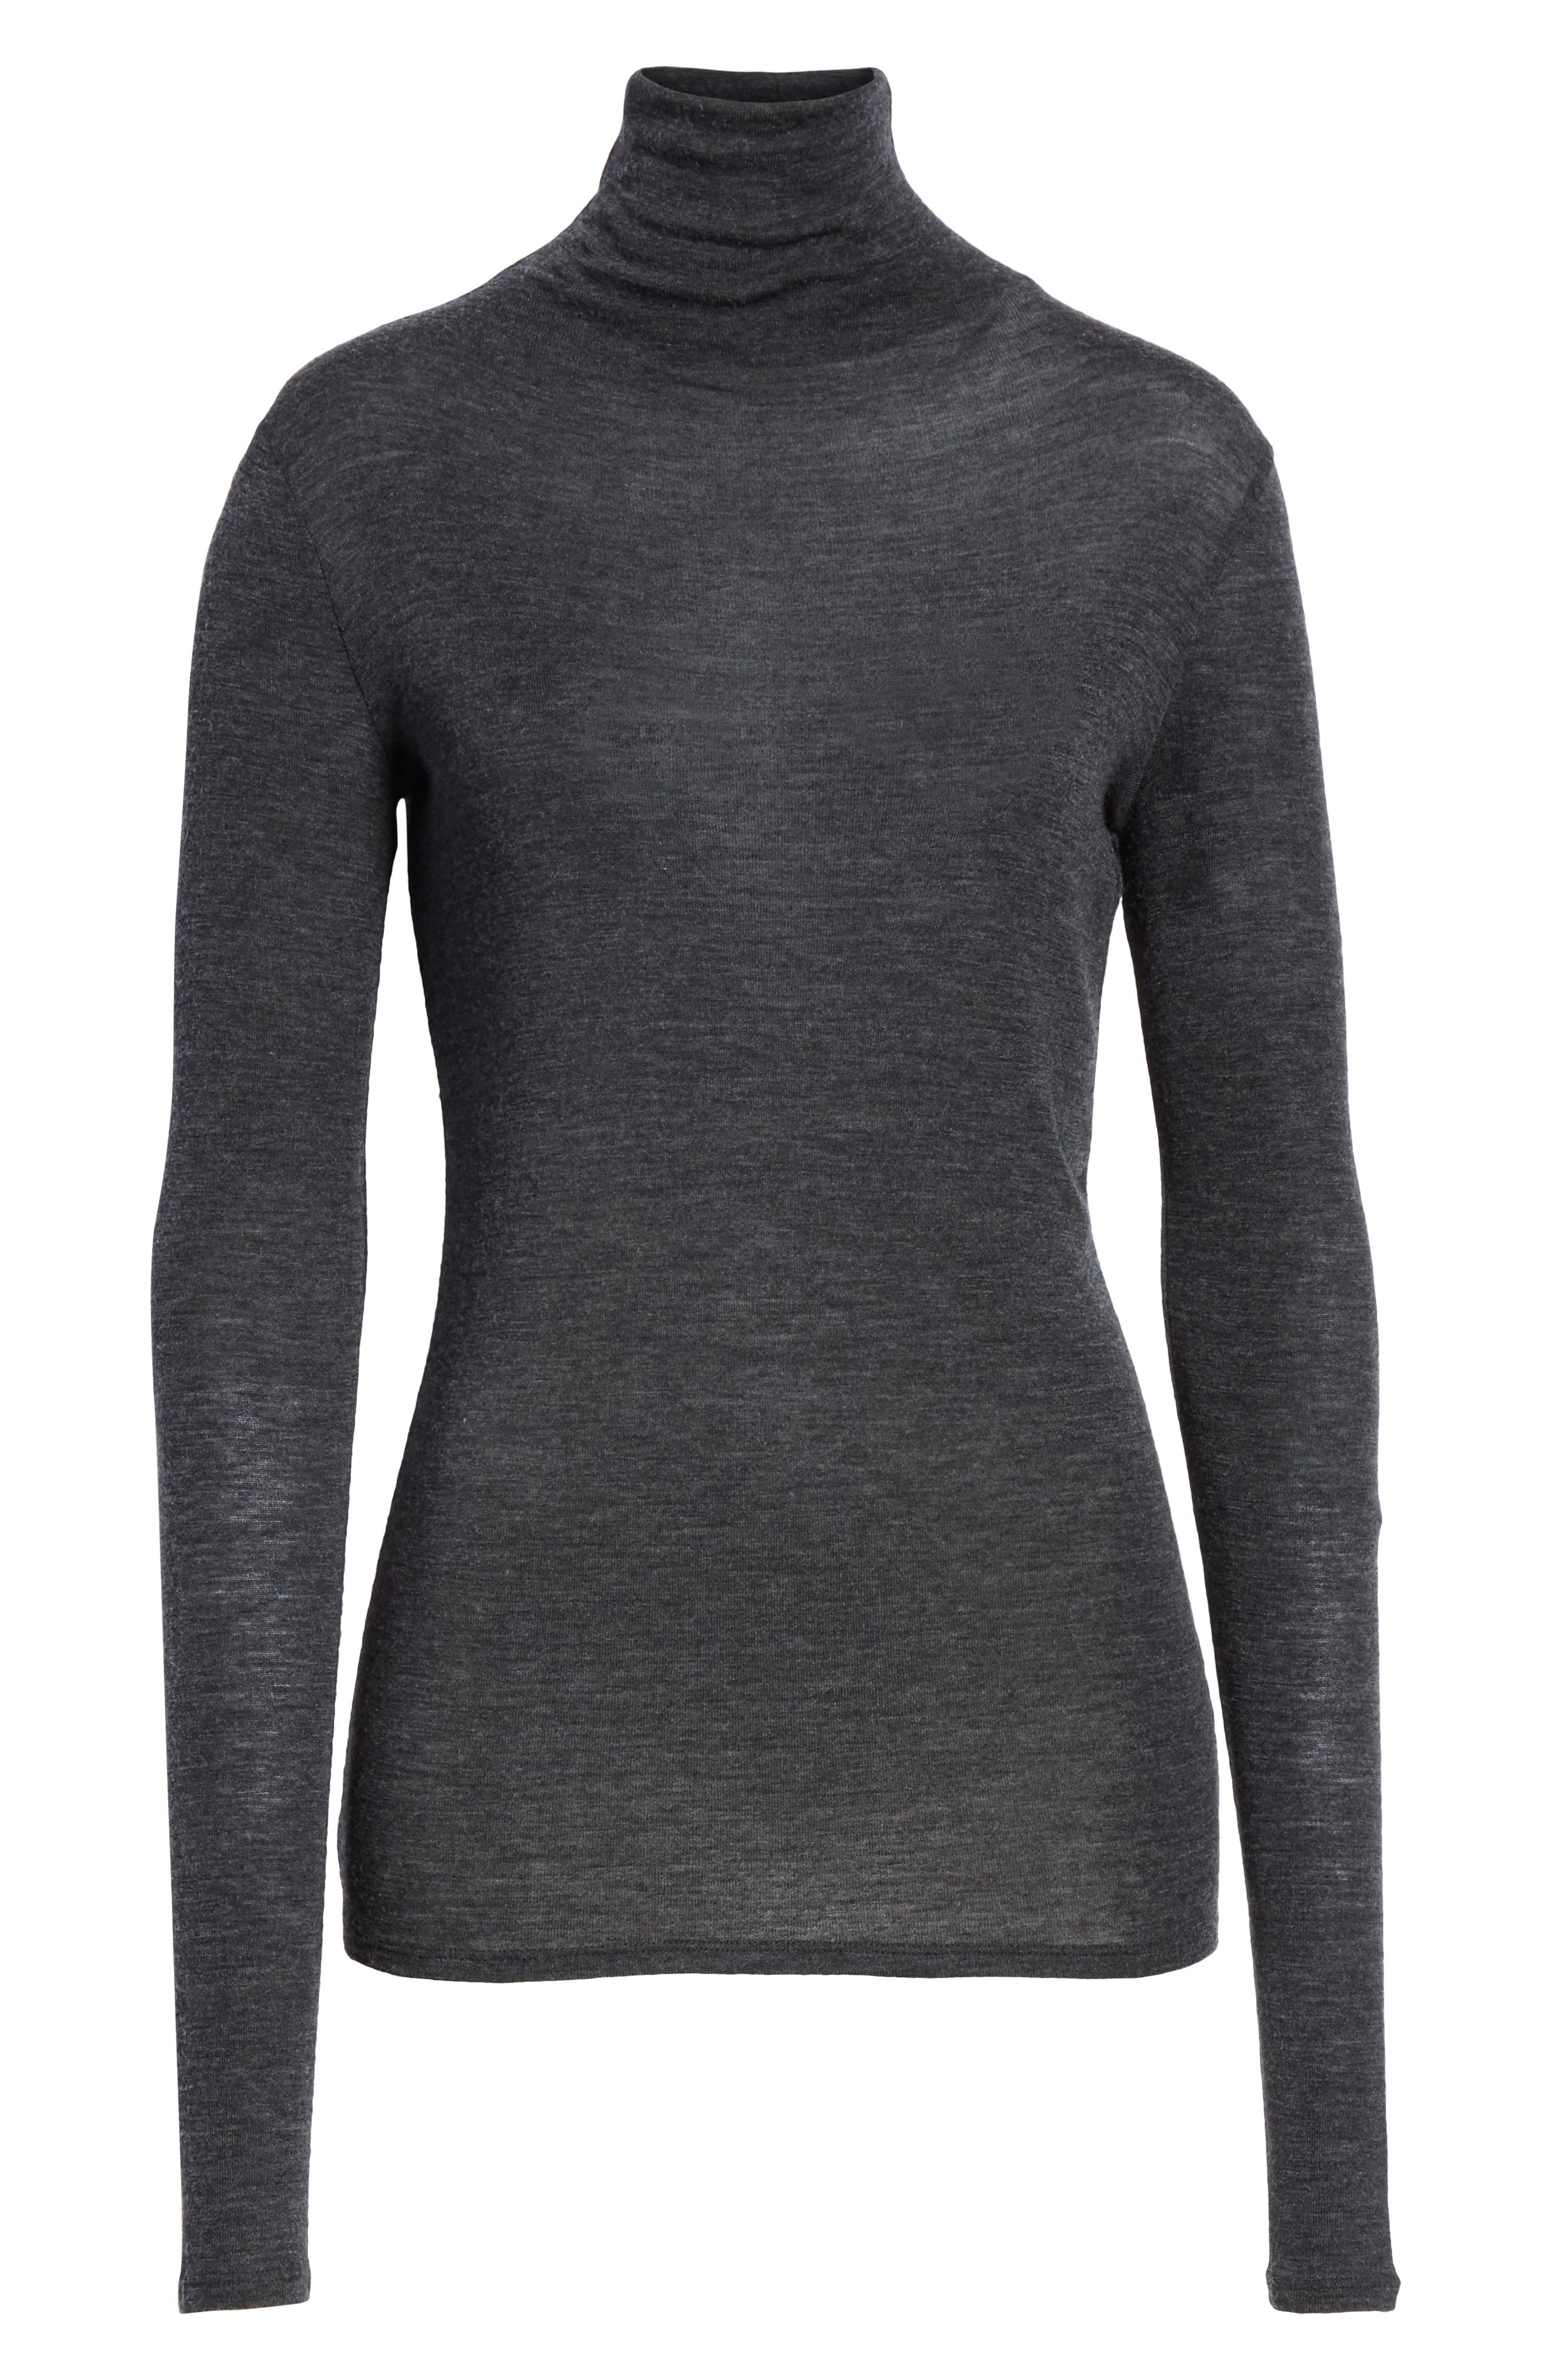 Wool Turtleneck Top,                             Alternate thumbnail 6, color,                             065